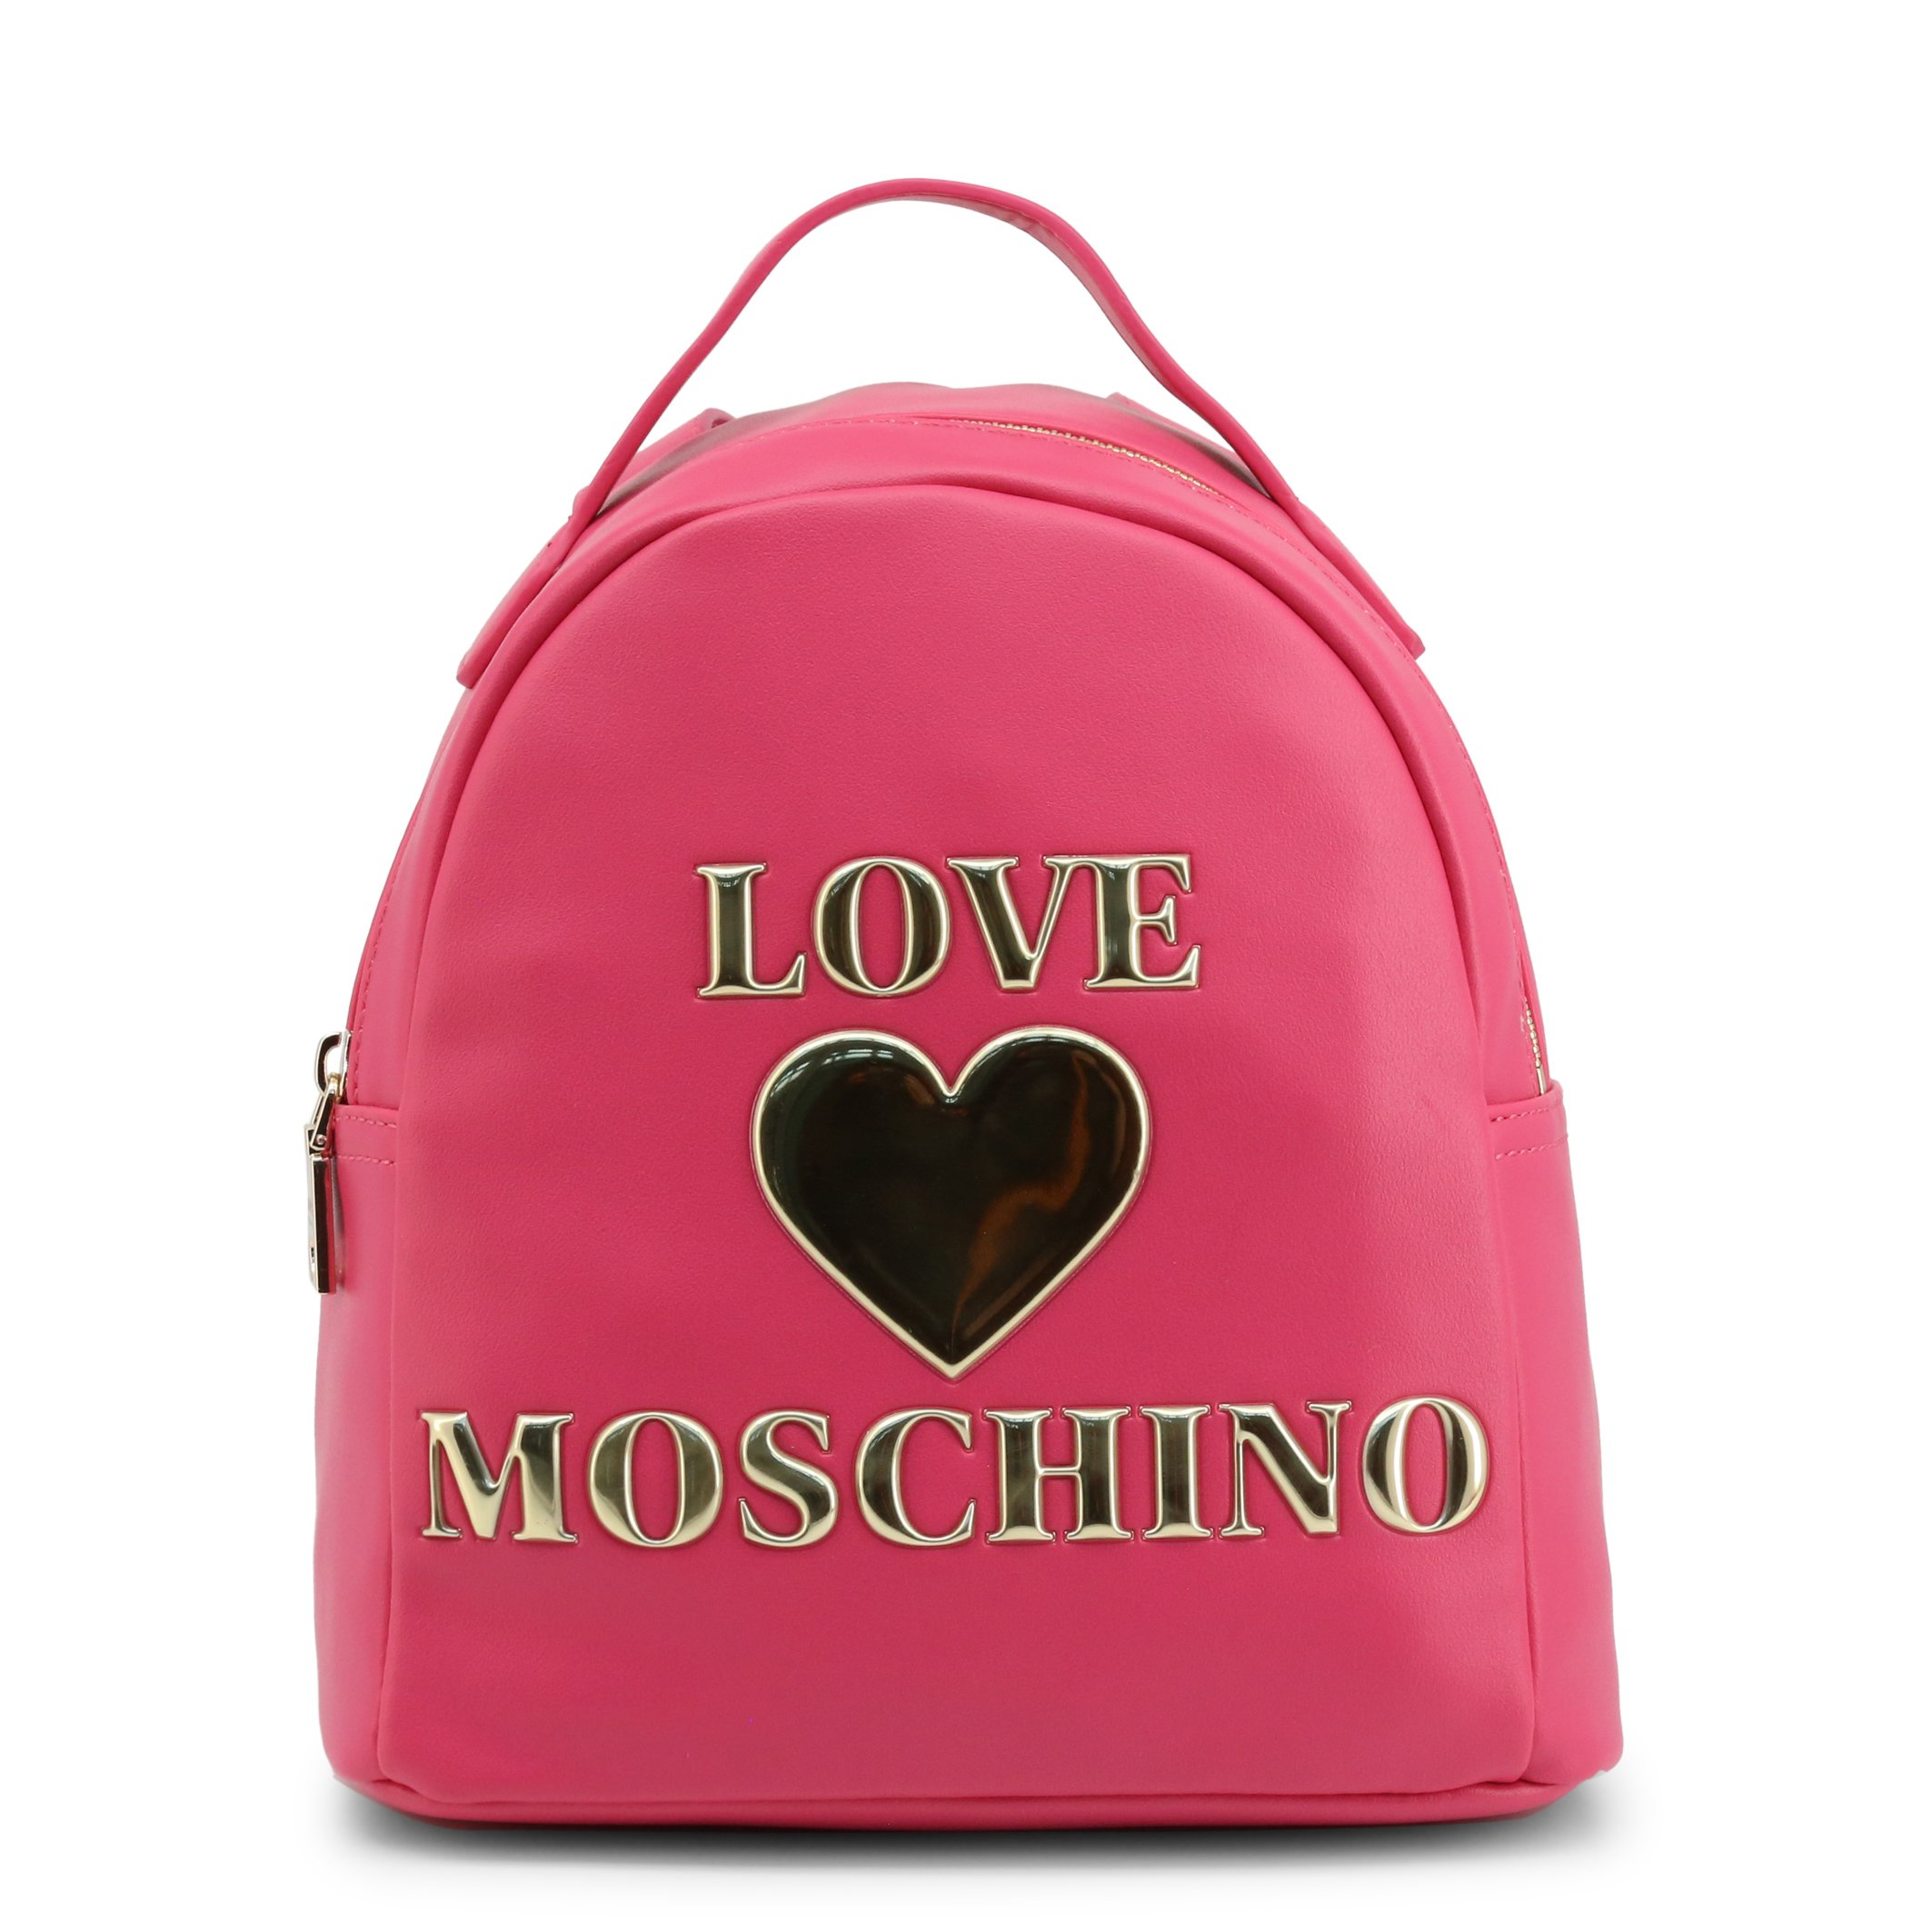 Love Moschino Women's Backpack Various Colours JC4053PP1CLF0 - pink NOSIZE